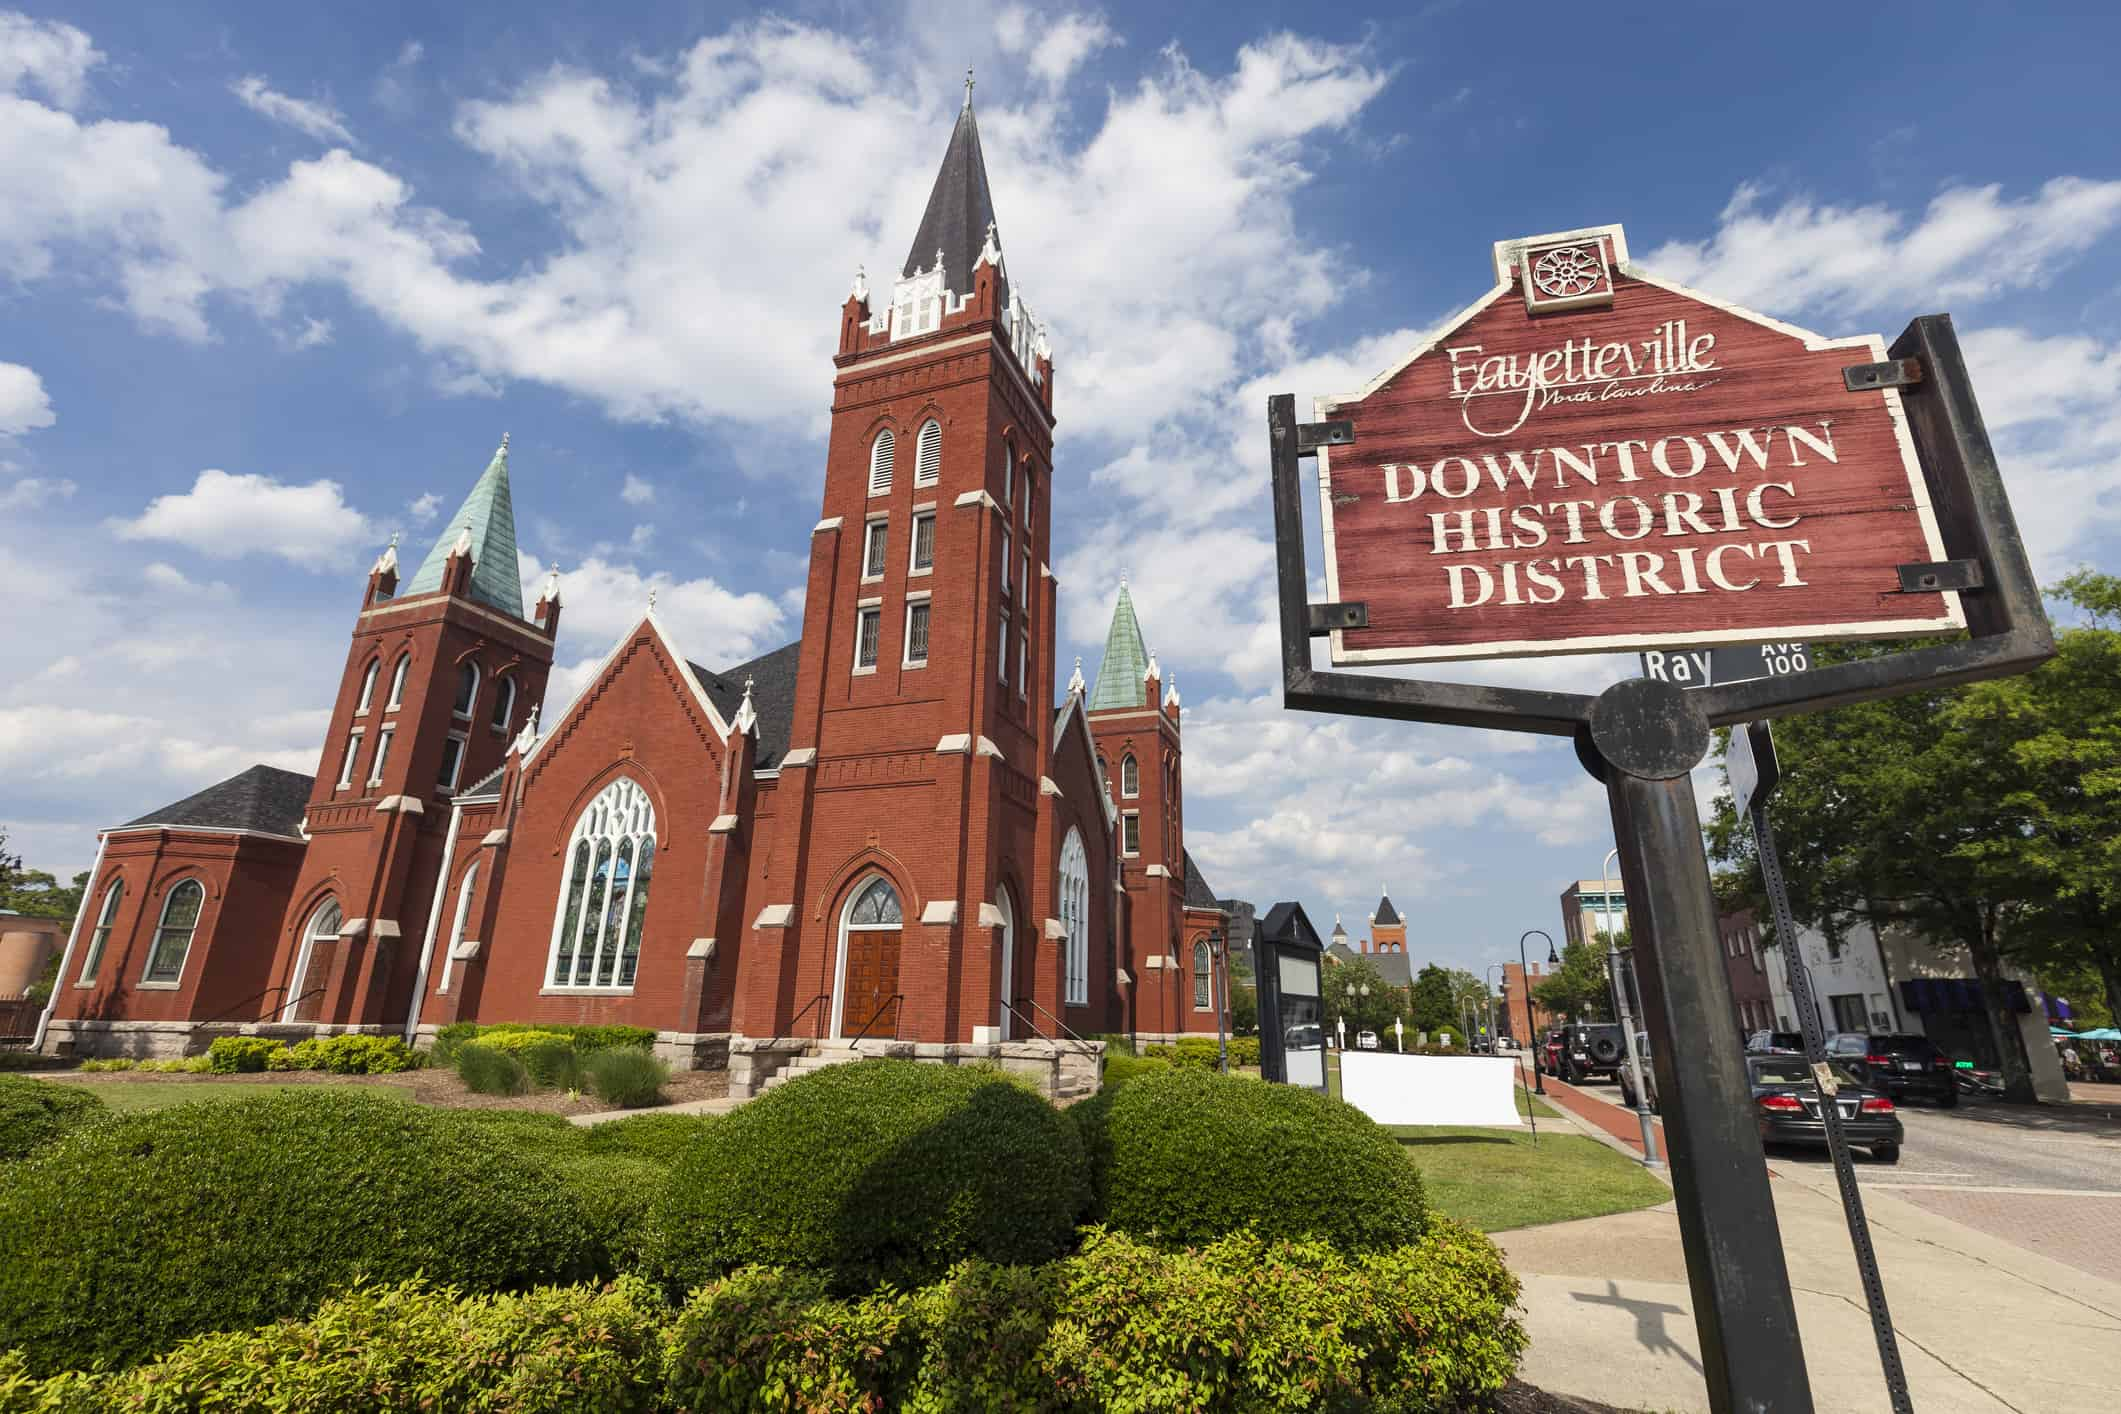 The Hay Street United Methodist Church in downtown Fayetteville, North Carolina was built in 1908.